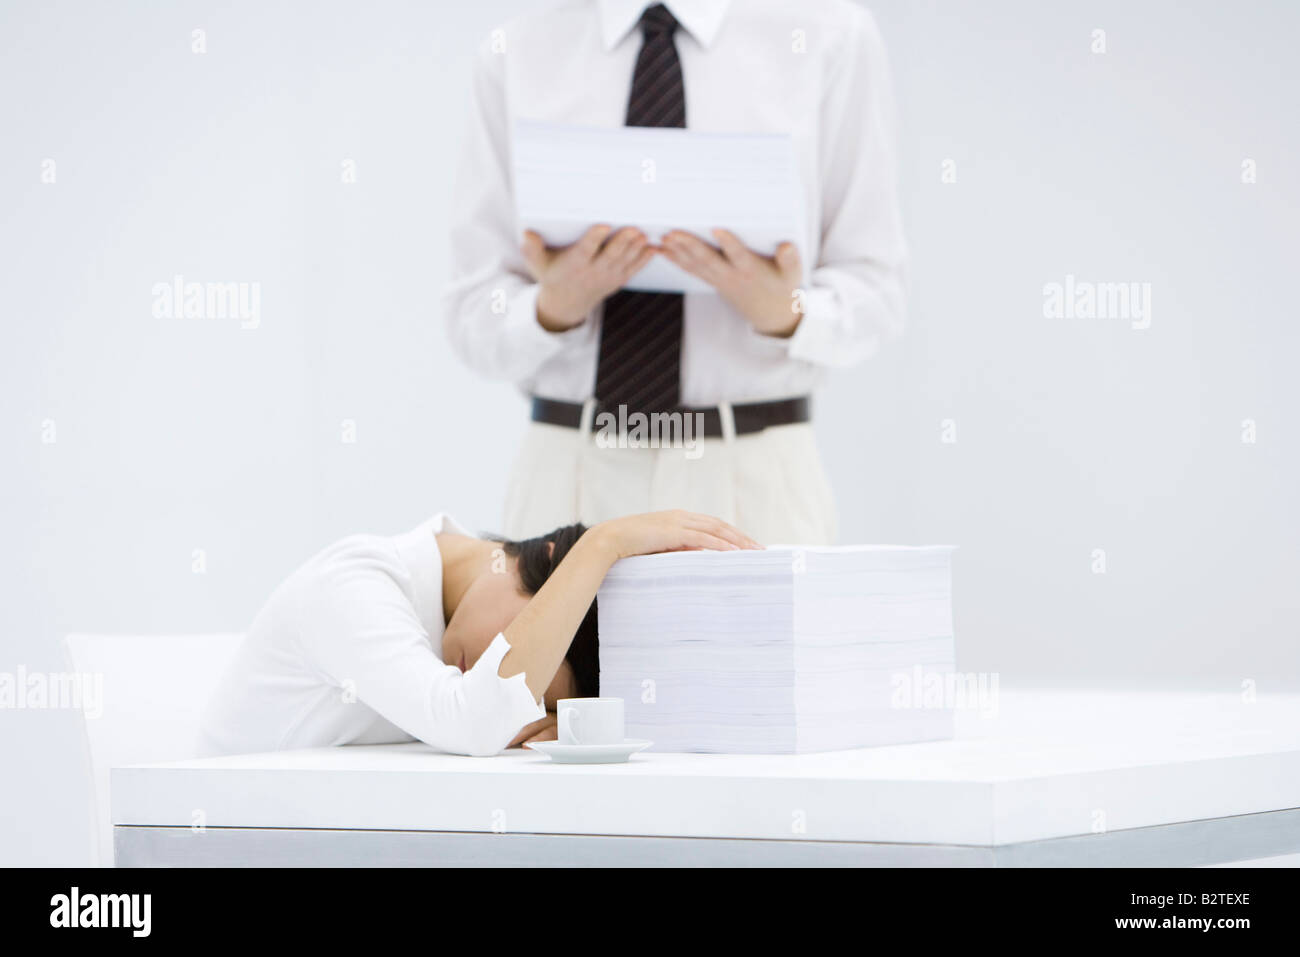 Woman with head down on desk, next to tall stack of papers, man holding another stack of paper - Stock Image